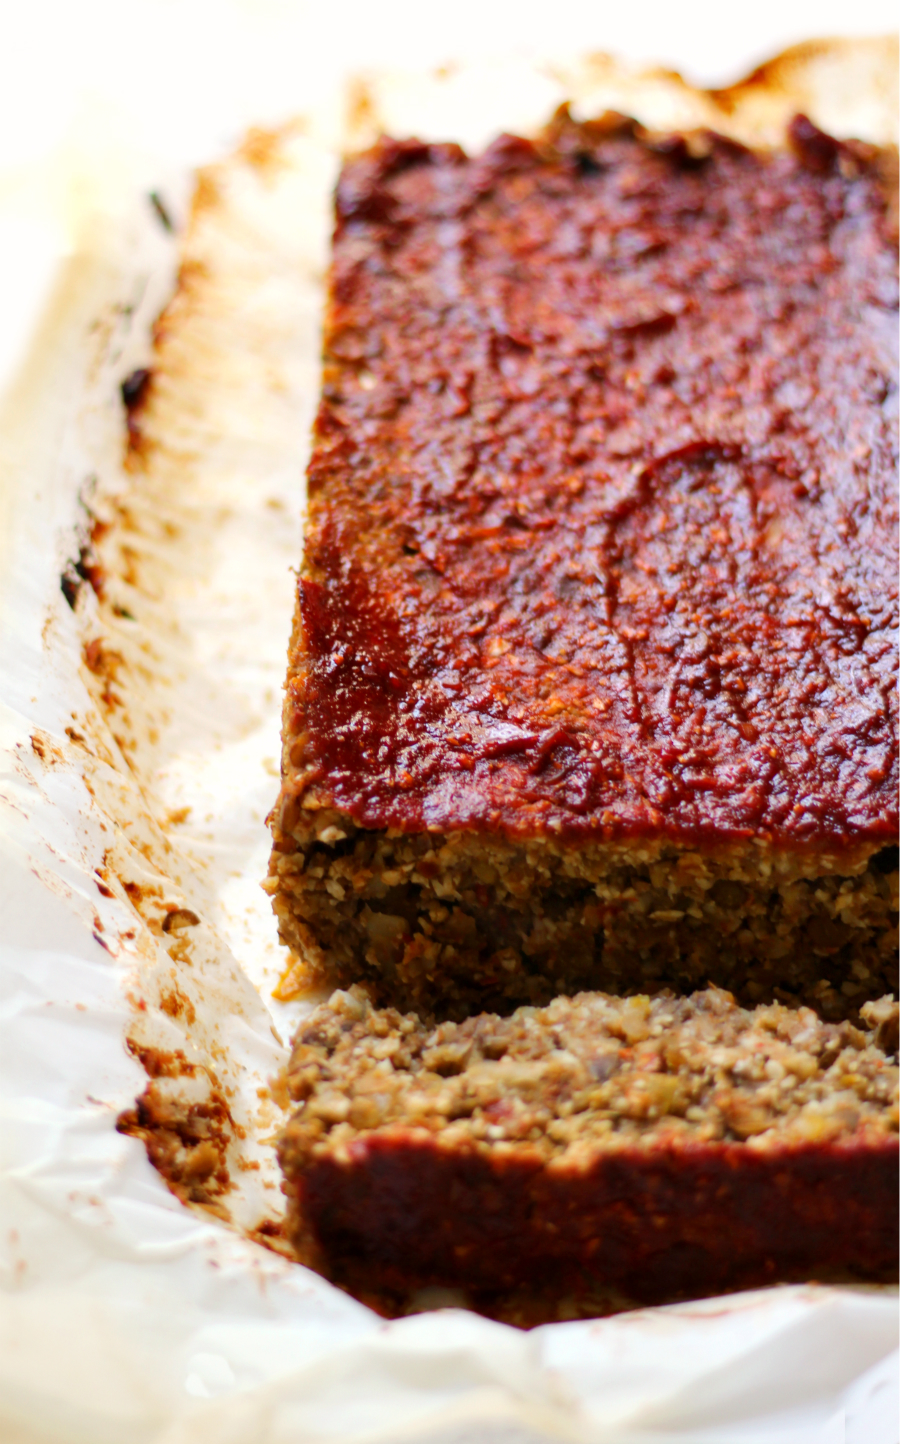 Vegan Cauliflower Lentil Loaf | Strength and Sunshine @RebeccaGF666 A hearty plant-based dinner idea that will satisfy even meat-eaters! A Vegan Cauliflower Lentil Loaf that mimics the classic meatloaf with no meat, gluten-free, nut-free, and soy-free! Get all your protein and veggies in this healthy recipe!